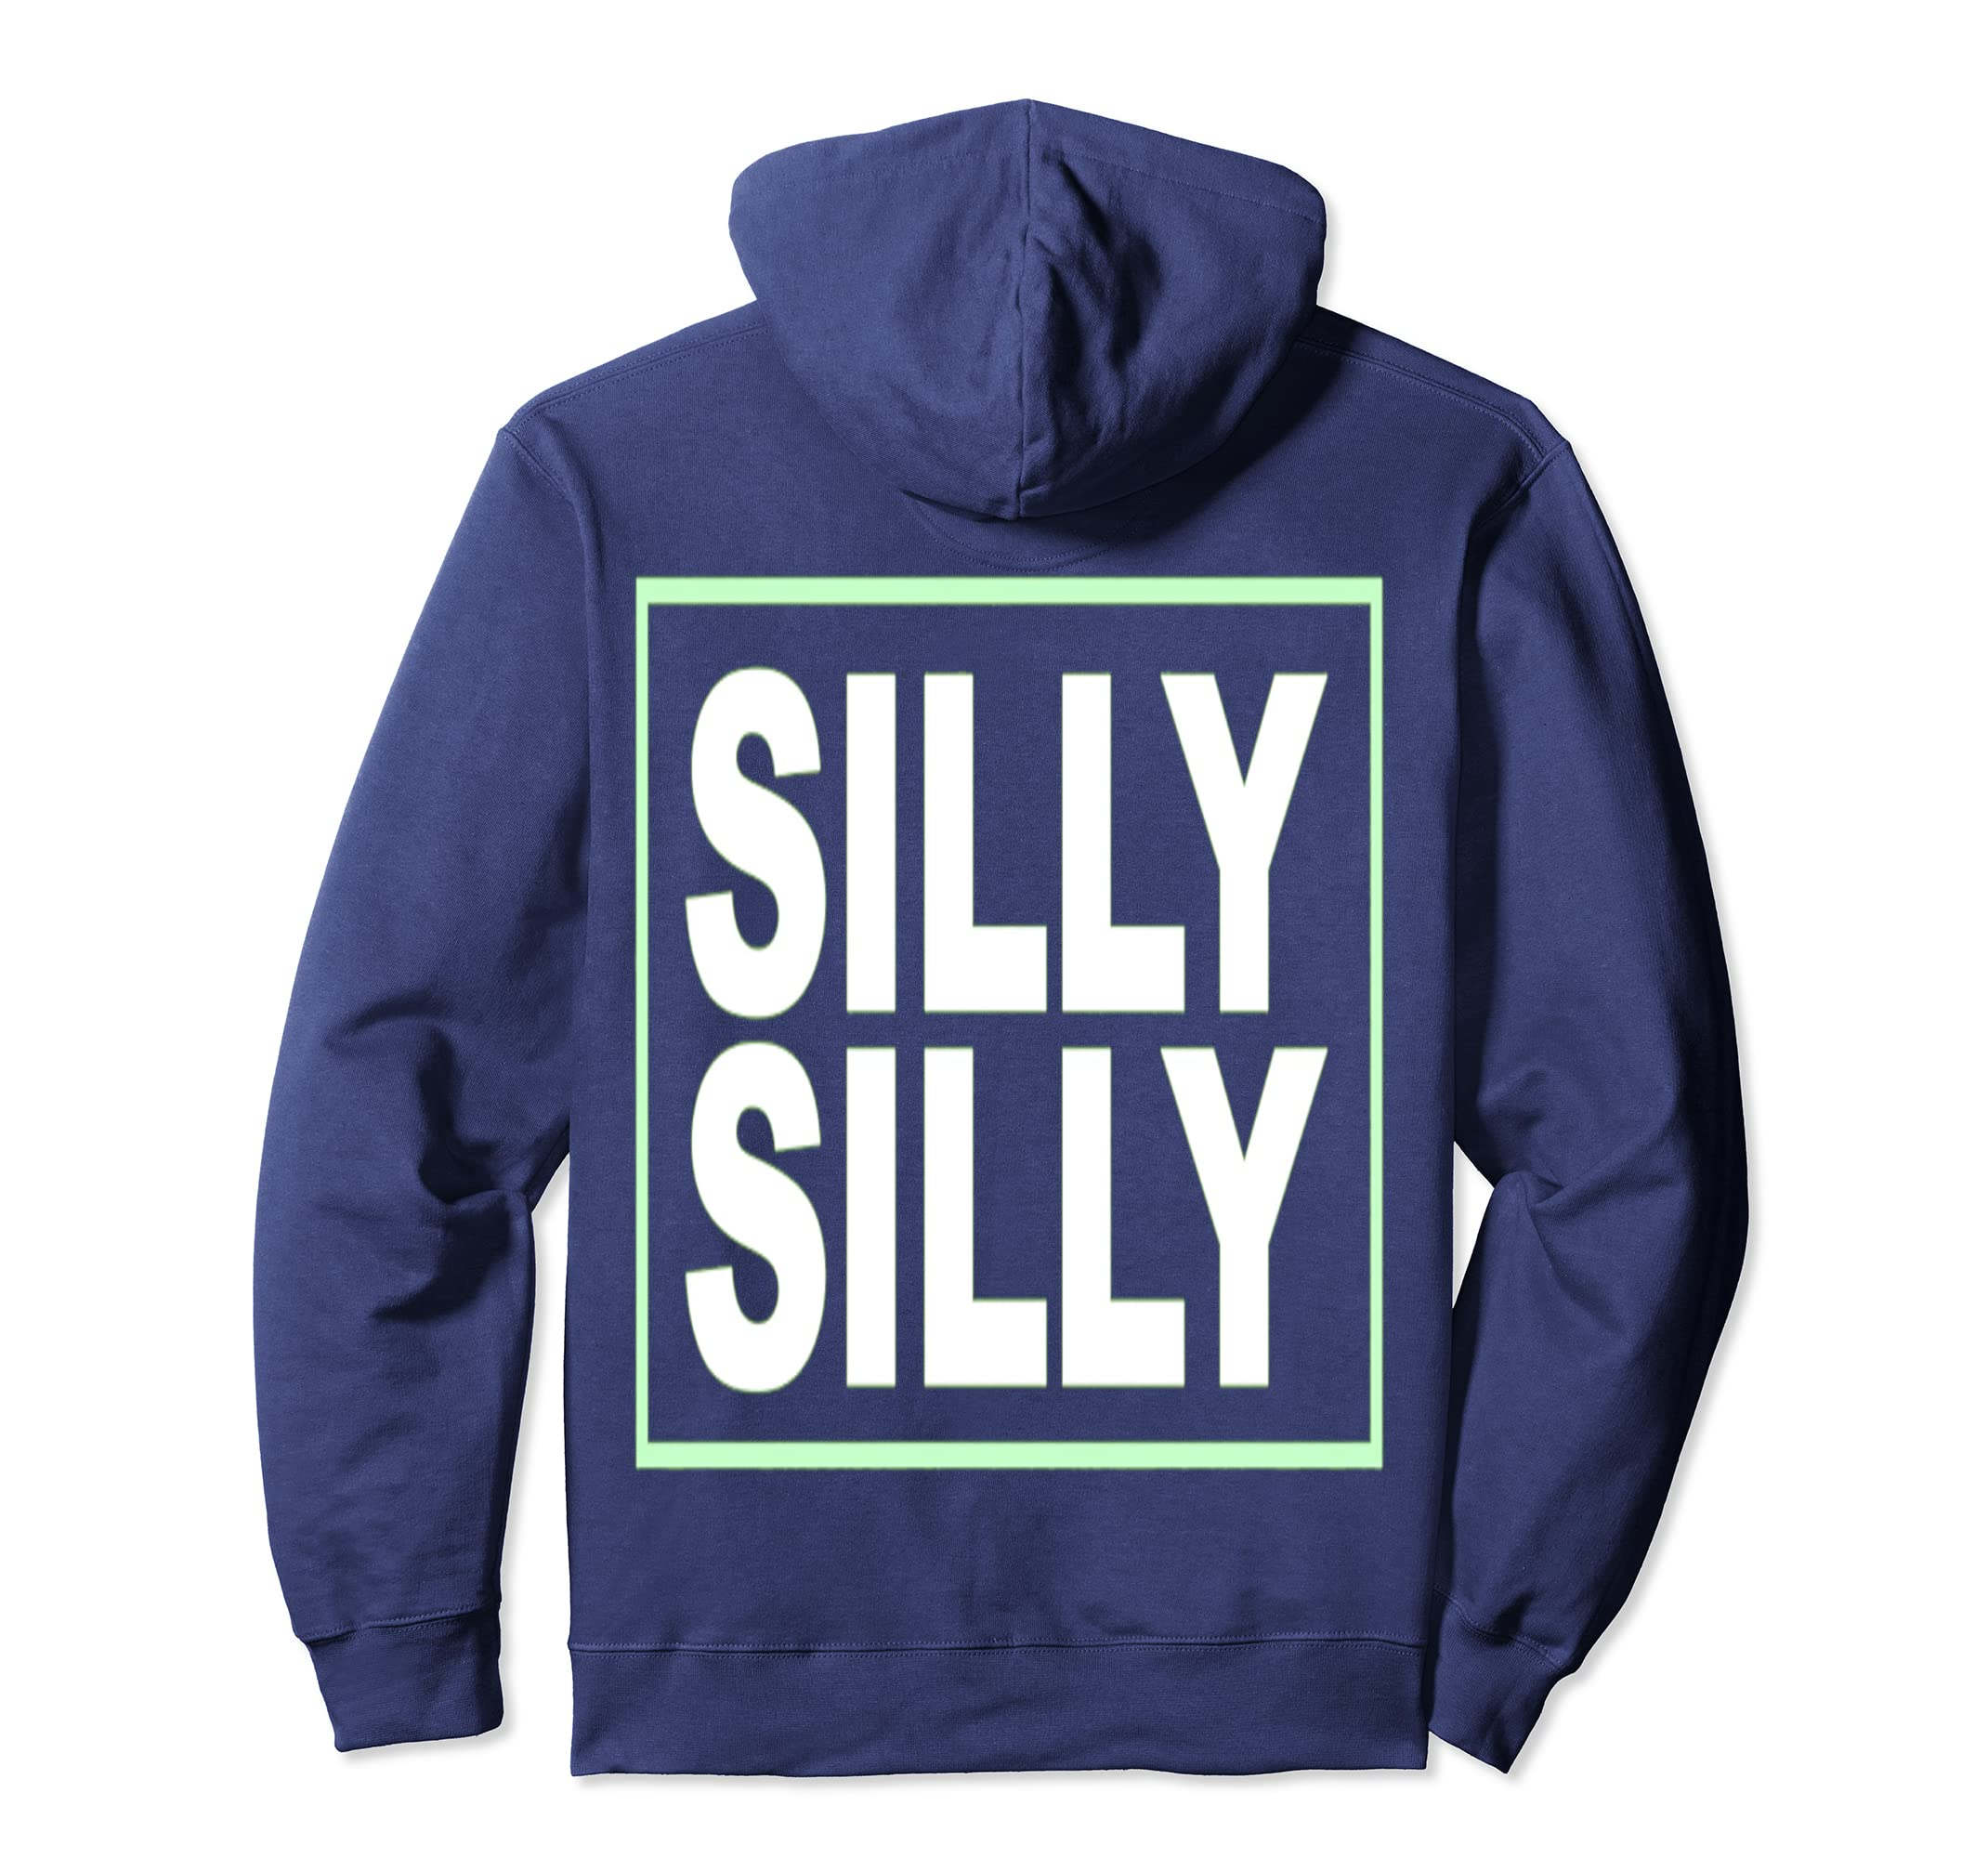 10da1dd5 Amazon.com: Silly Silly Pullover Hoodie for Woman: Clothing